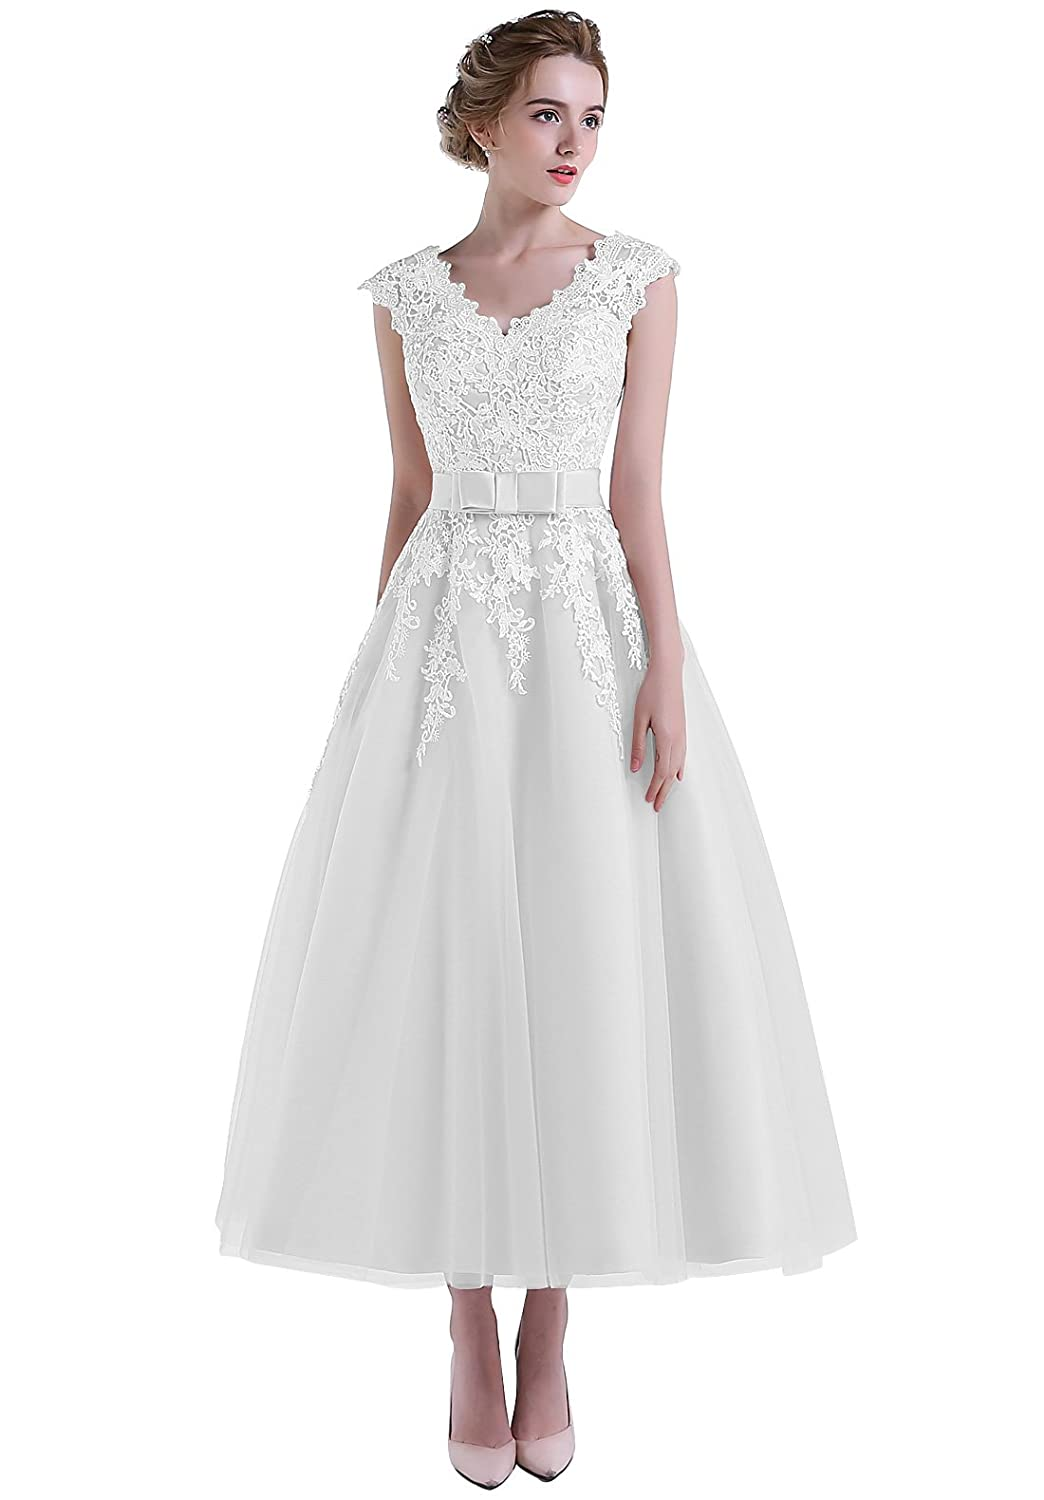 2fdd904b9c9 Top 10 wholesale Tea Length Bridal Gowns - Chinabrands.com